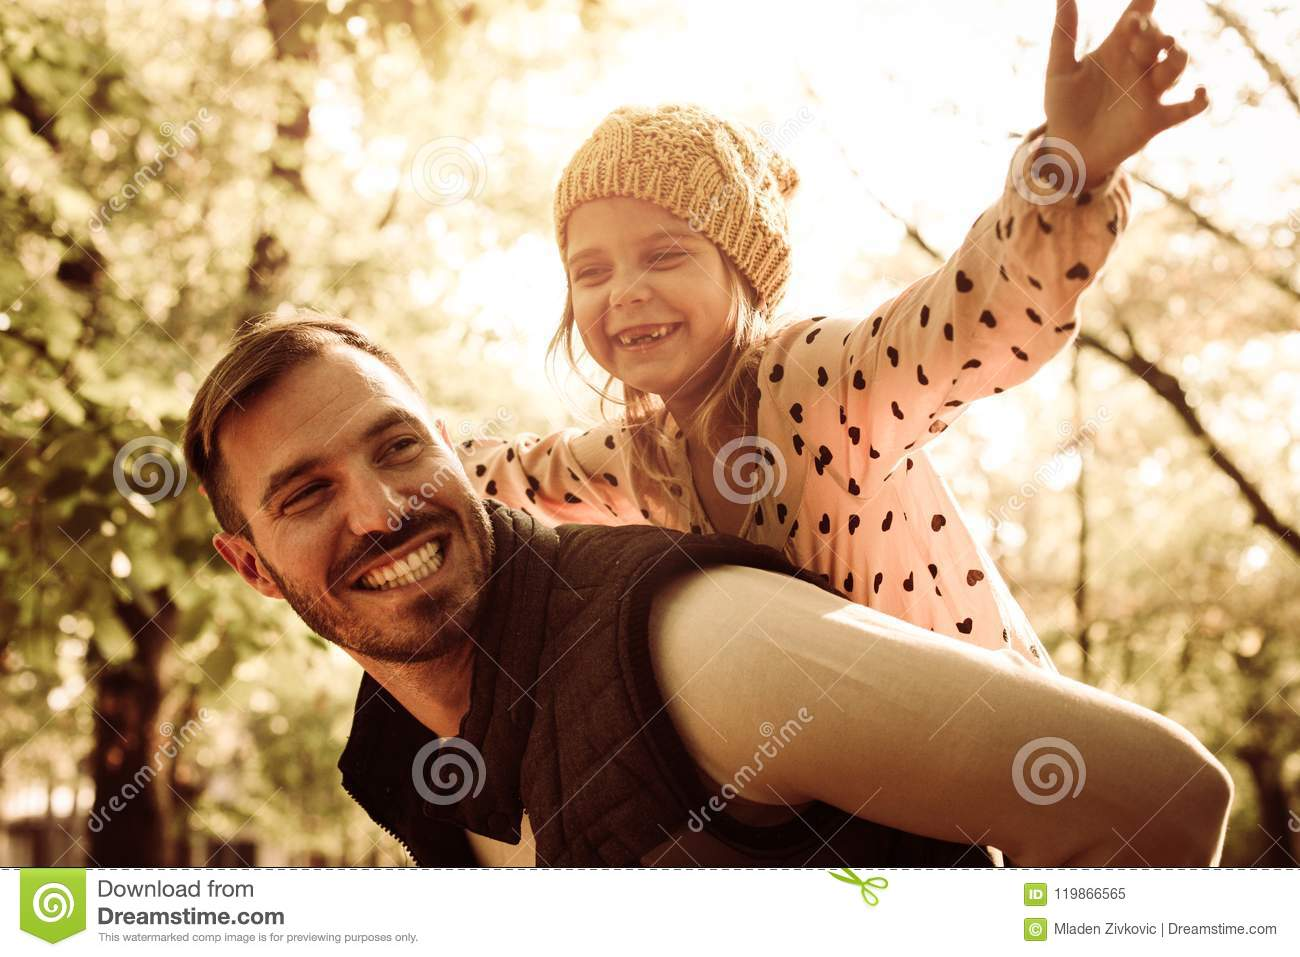 Father and daughter in park.